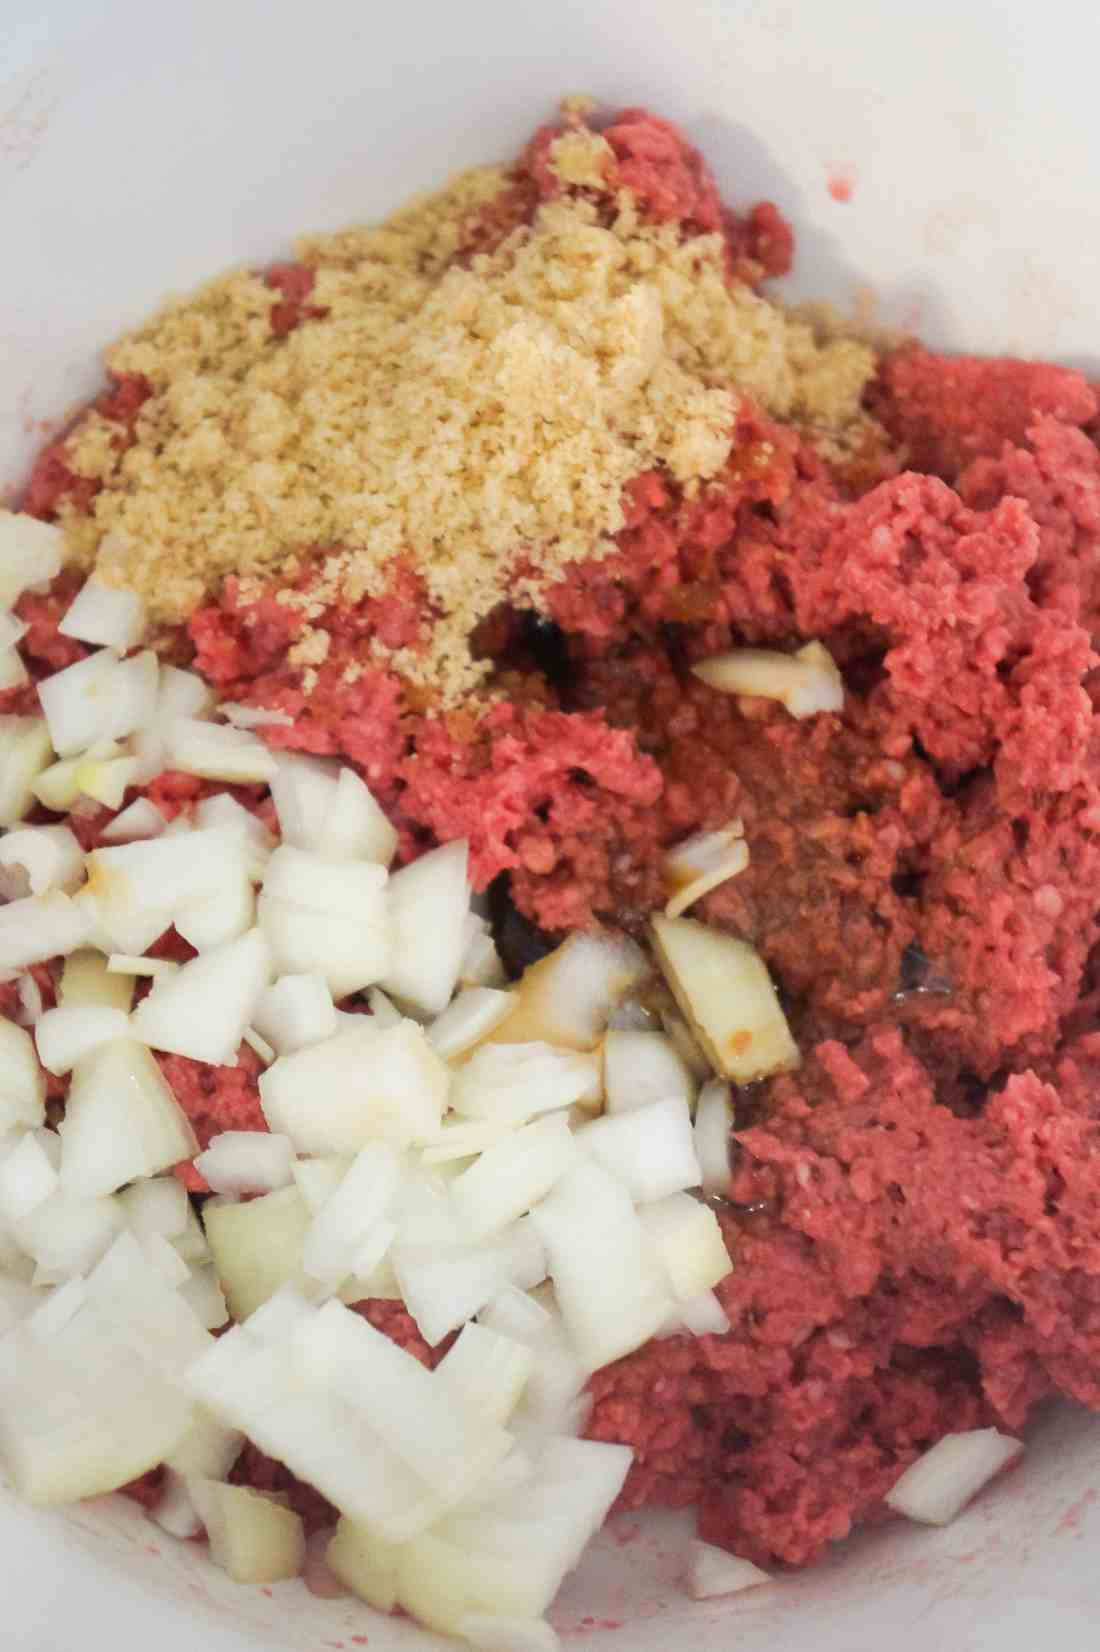 Ground beef for meatloaf